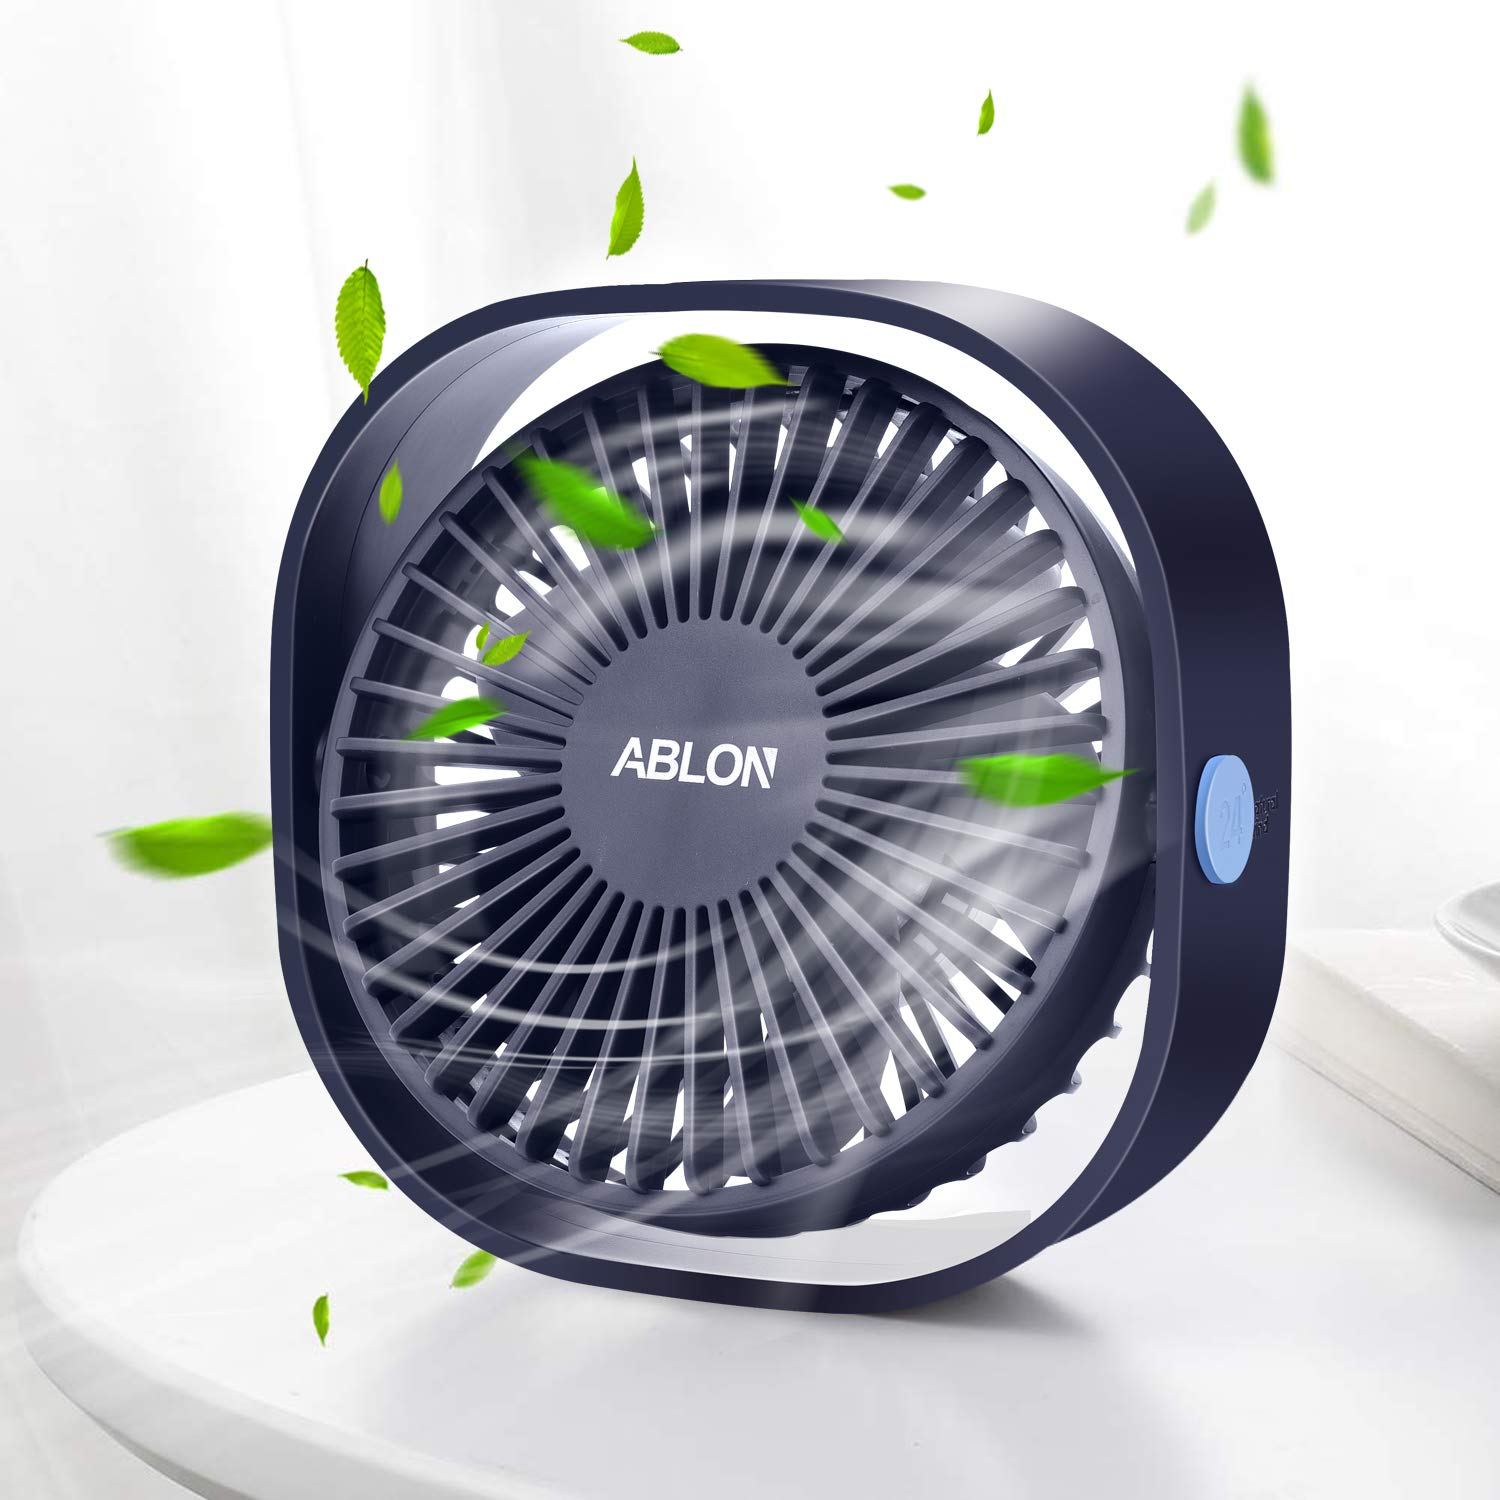 Ablon Desk Fan, Small Table Personal Portable Mini Fan Powered by USB, 3 Speed and Quiet Design for Office, Home,Outdoor Travel(Navy Blue) by Ablon